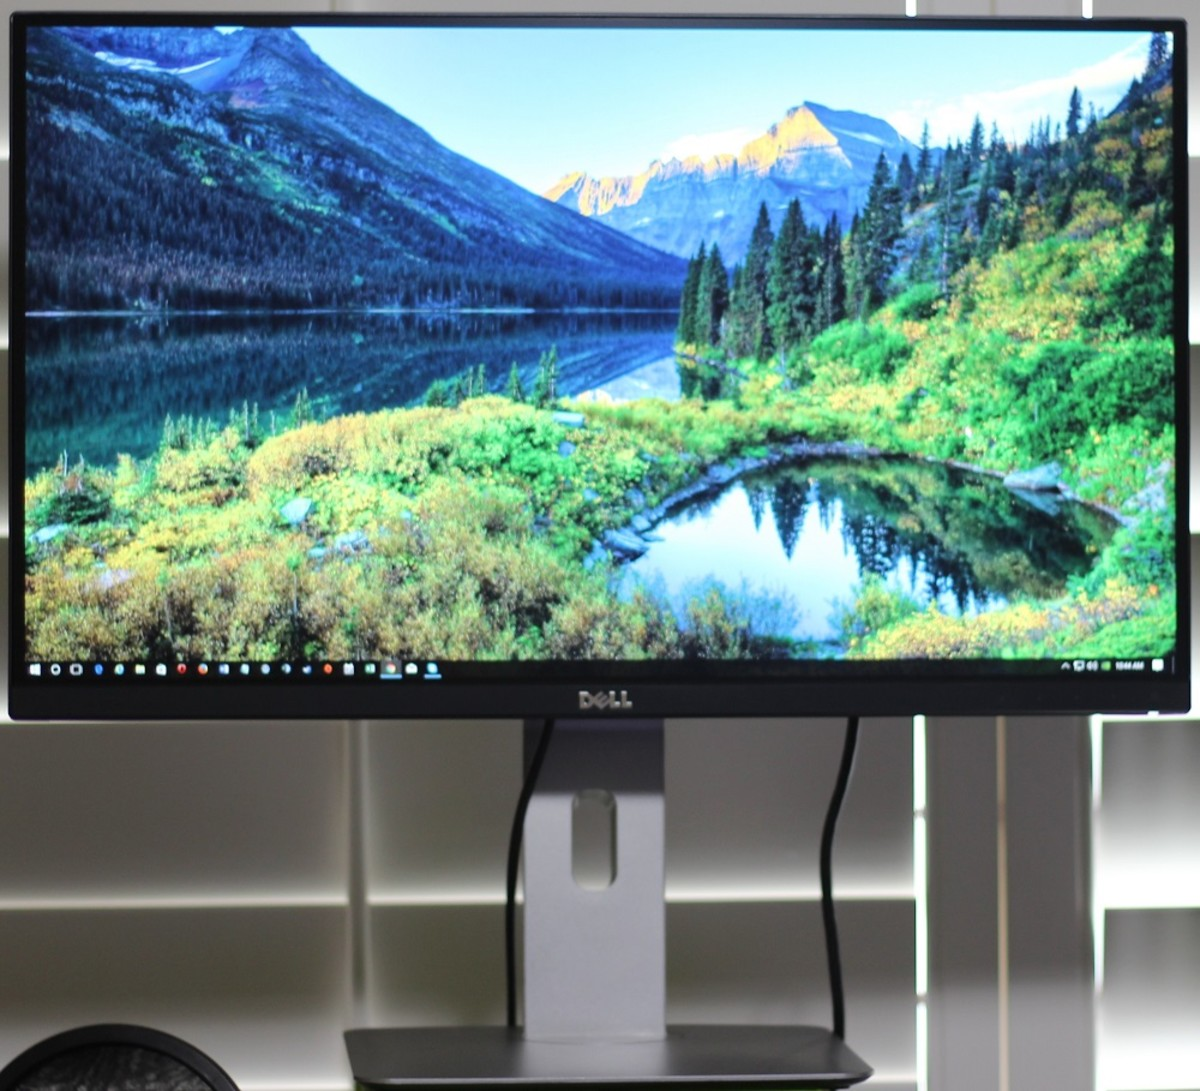 Dell's UltraSharp series has an amazing picture and a nearly bezel-free design.